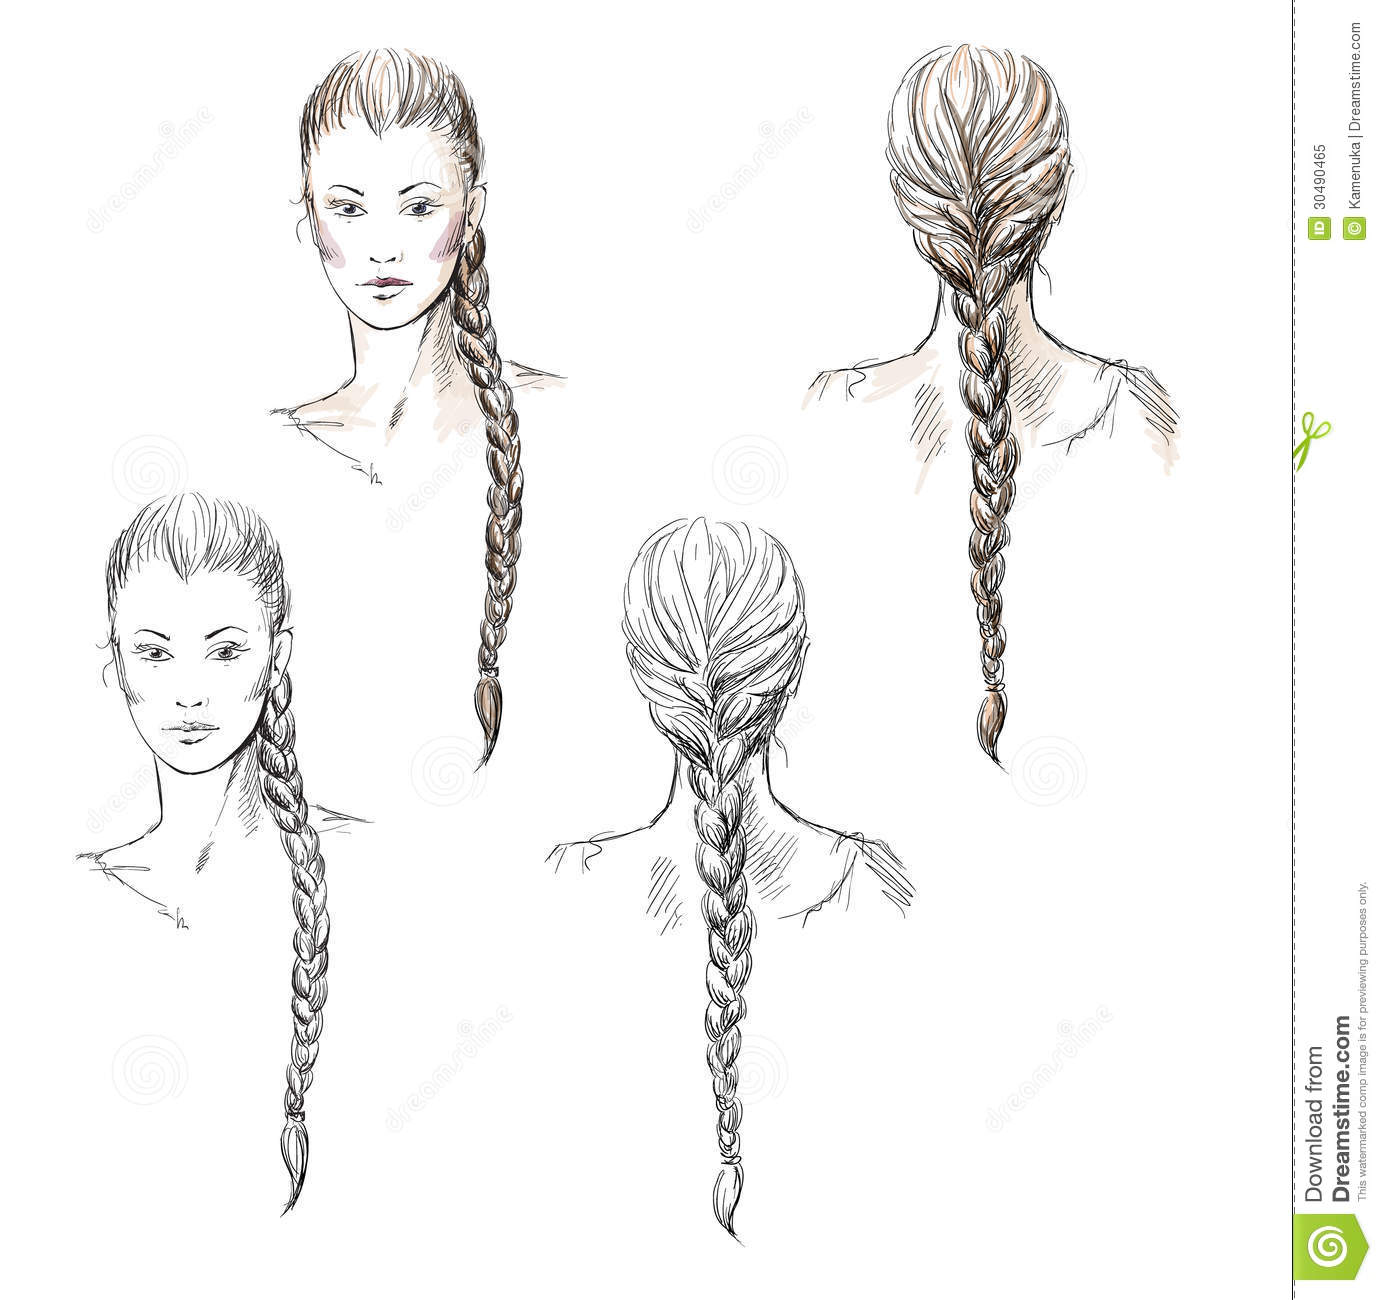 Astonishing Girl With A Braid Hand Drawn Royalty Free Stock Photo Image Short Hairstyles For Black Women Fulllsitofus